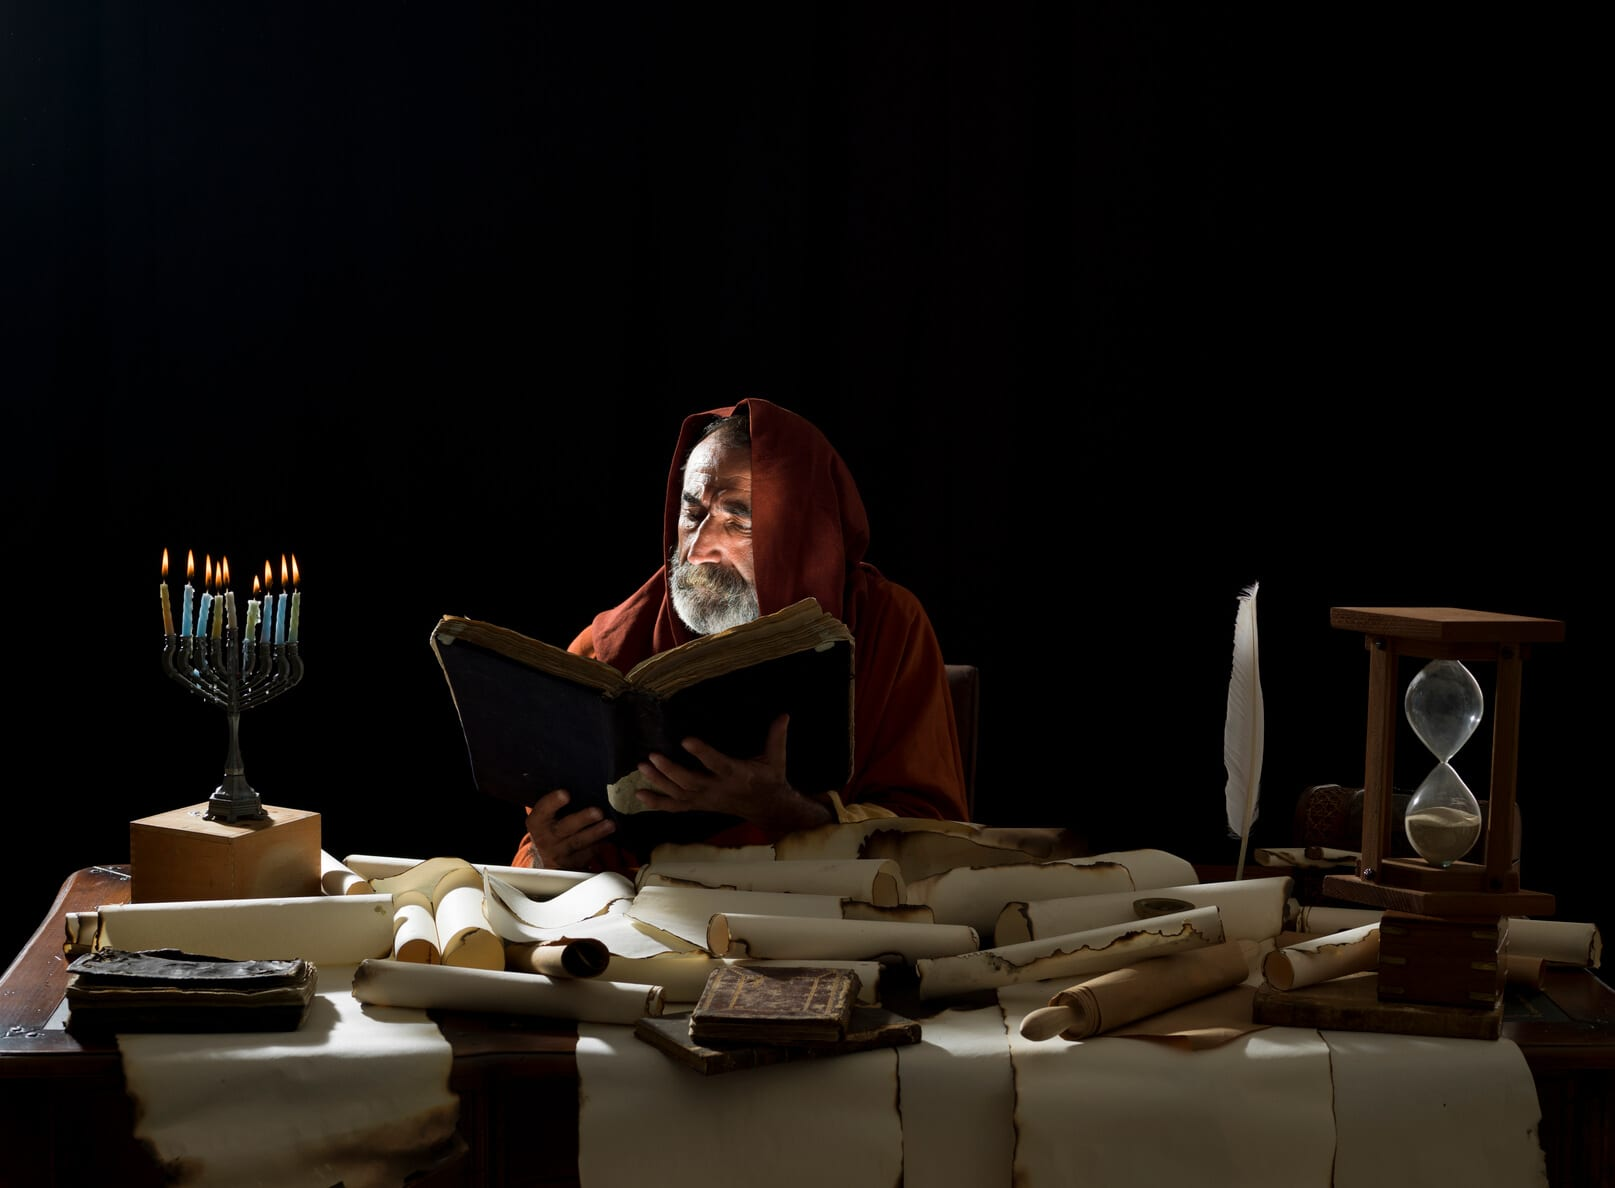 Medieval philosopher reading the 5 commandments of launching a knowledge management system